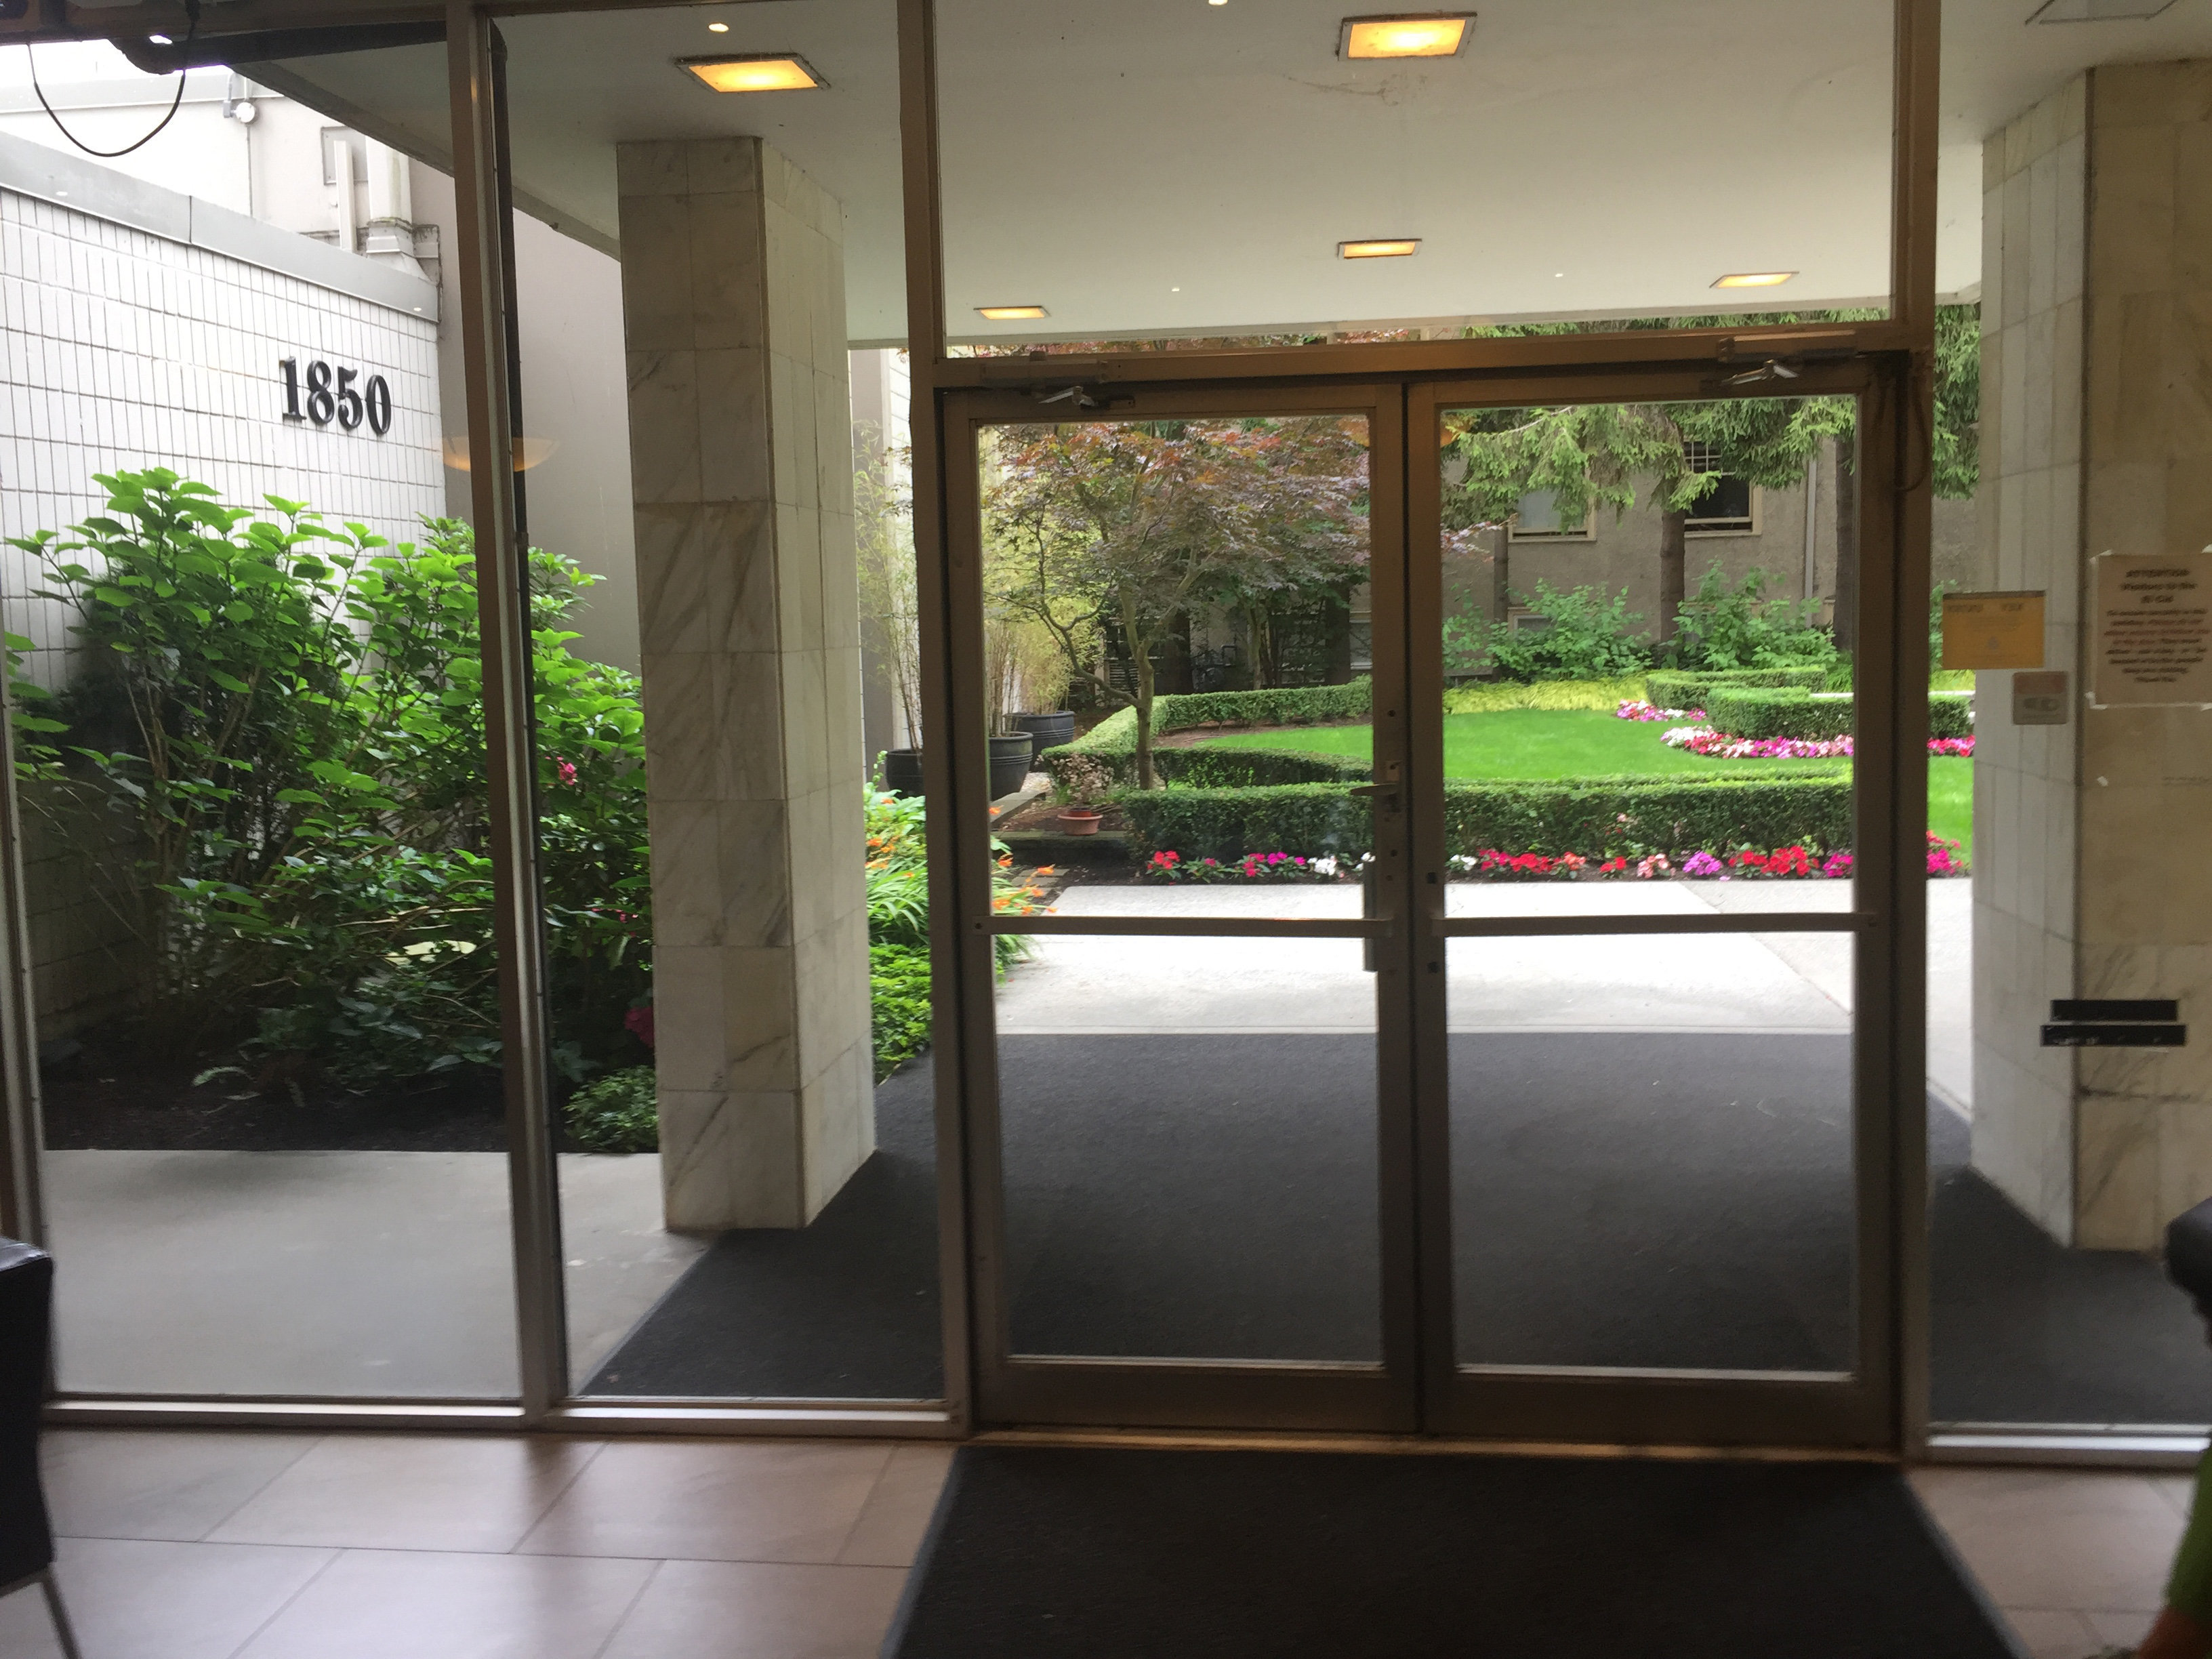 1850comox Lobby Looking Out!